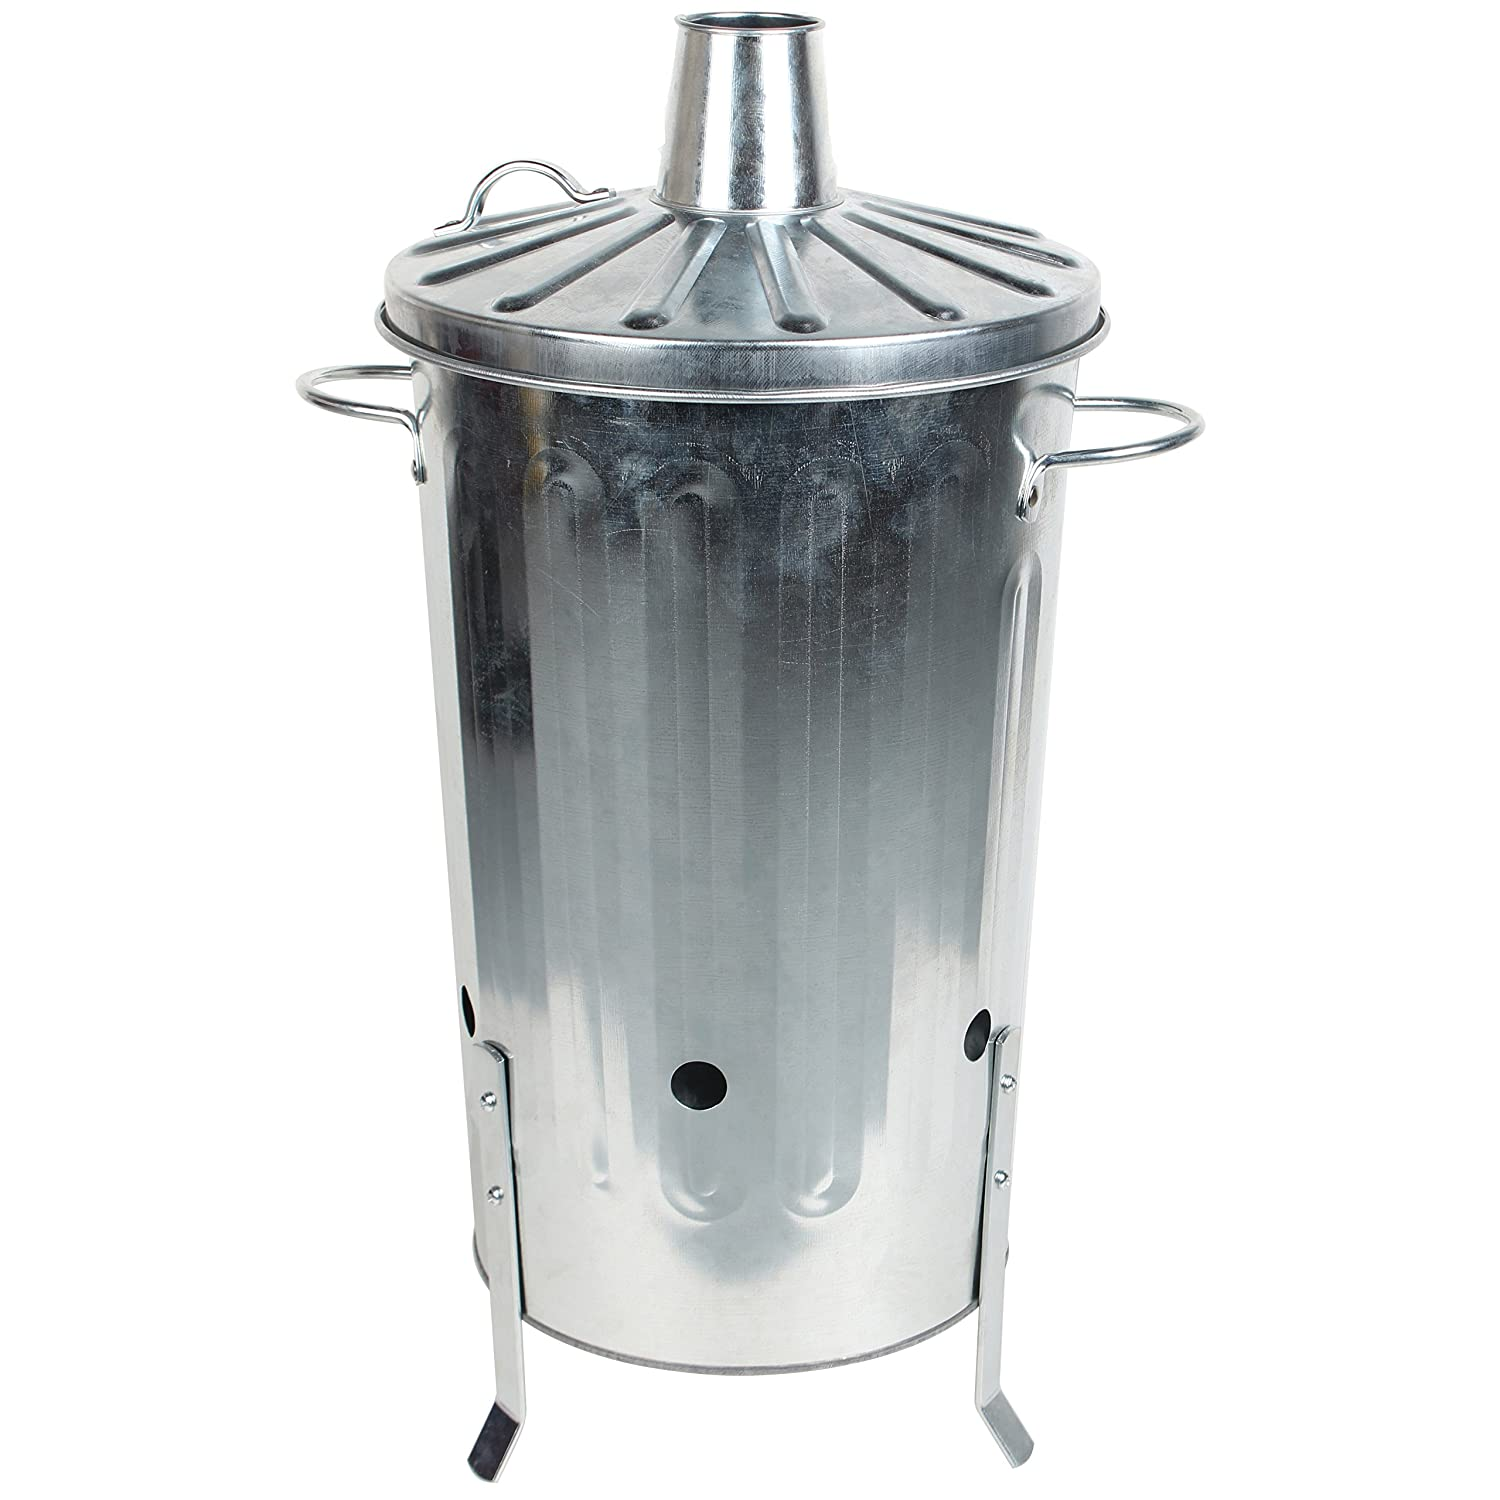 CrazyGadget 18 Litre 18L Small Garden Galvanised Metal Incinerator Fire Burning Bin for Wood Paper Leaves